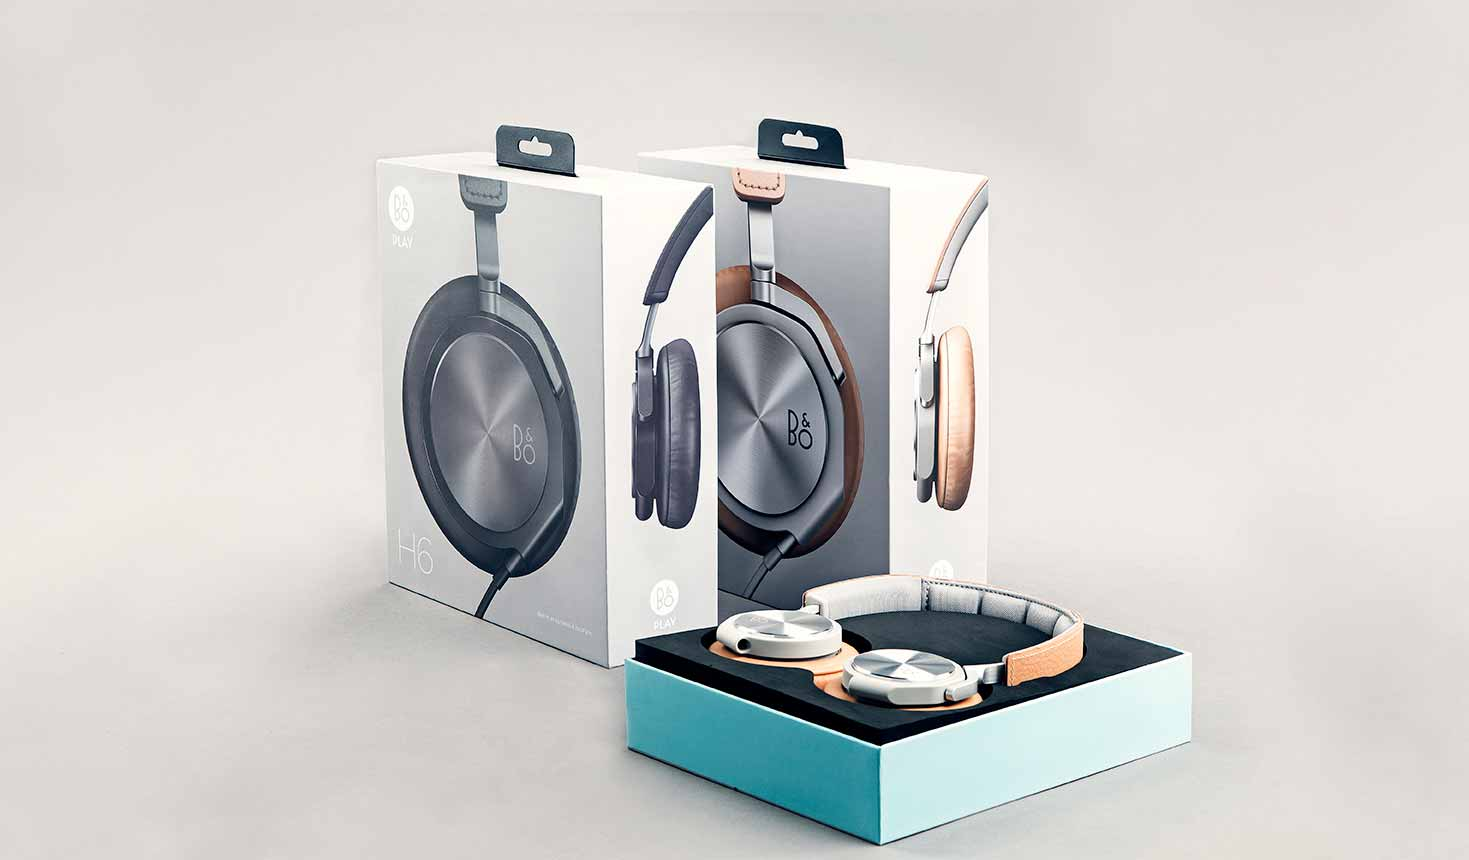 B&O Play Packaging, Hello Monday